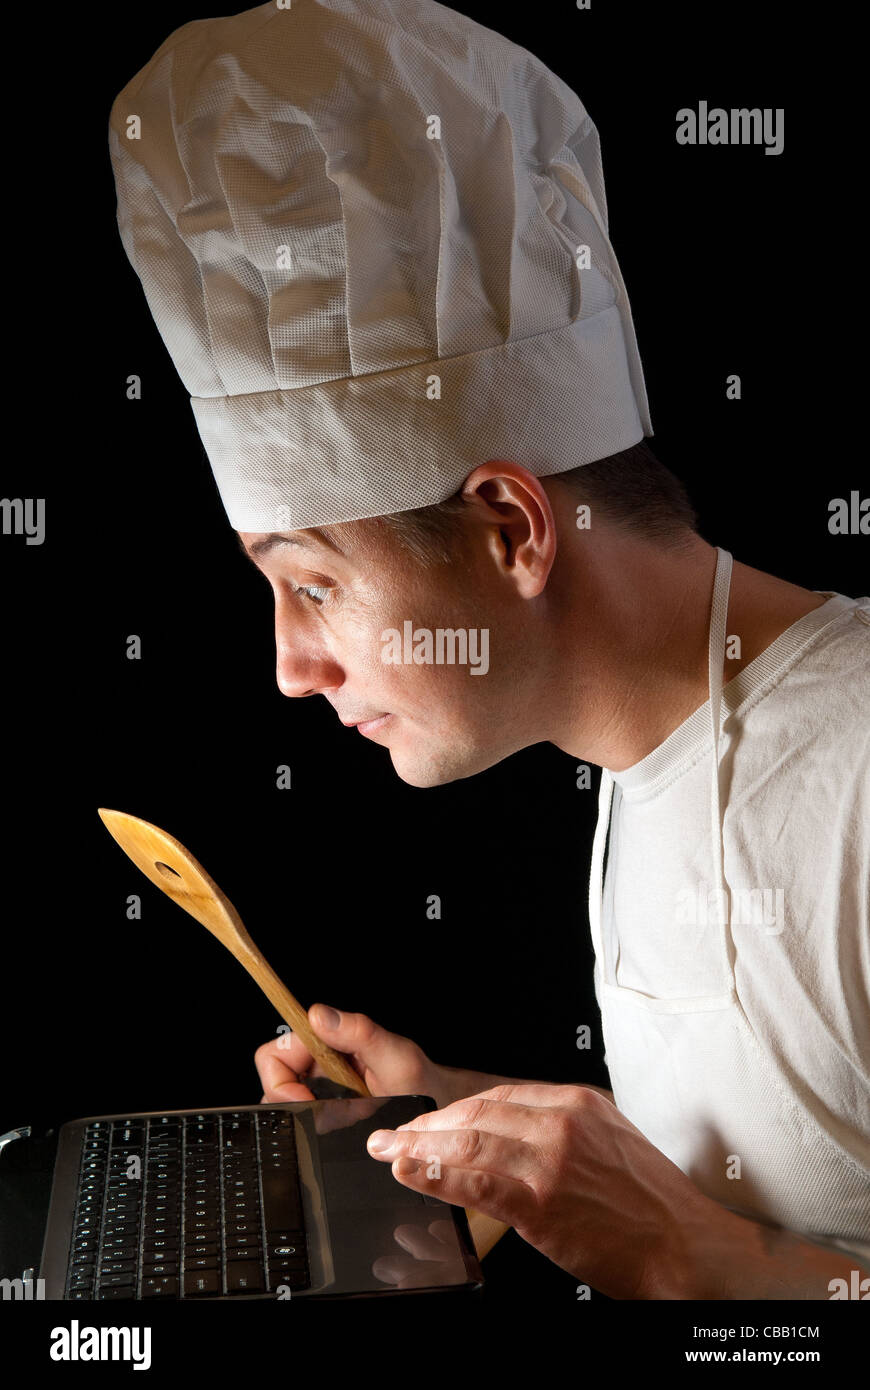 happy Chef with spatula using a computer to search for a recipe - Stock Image